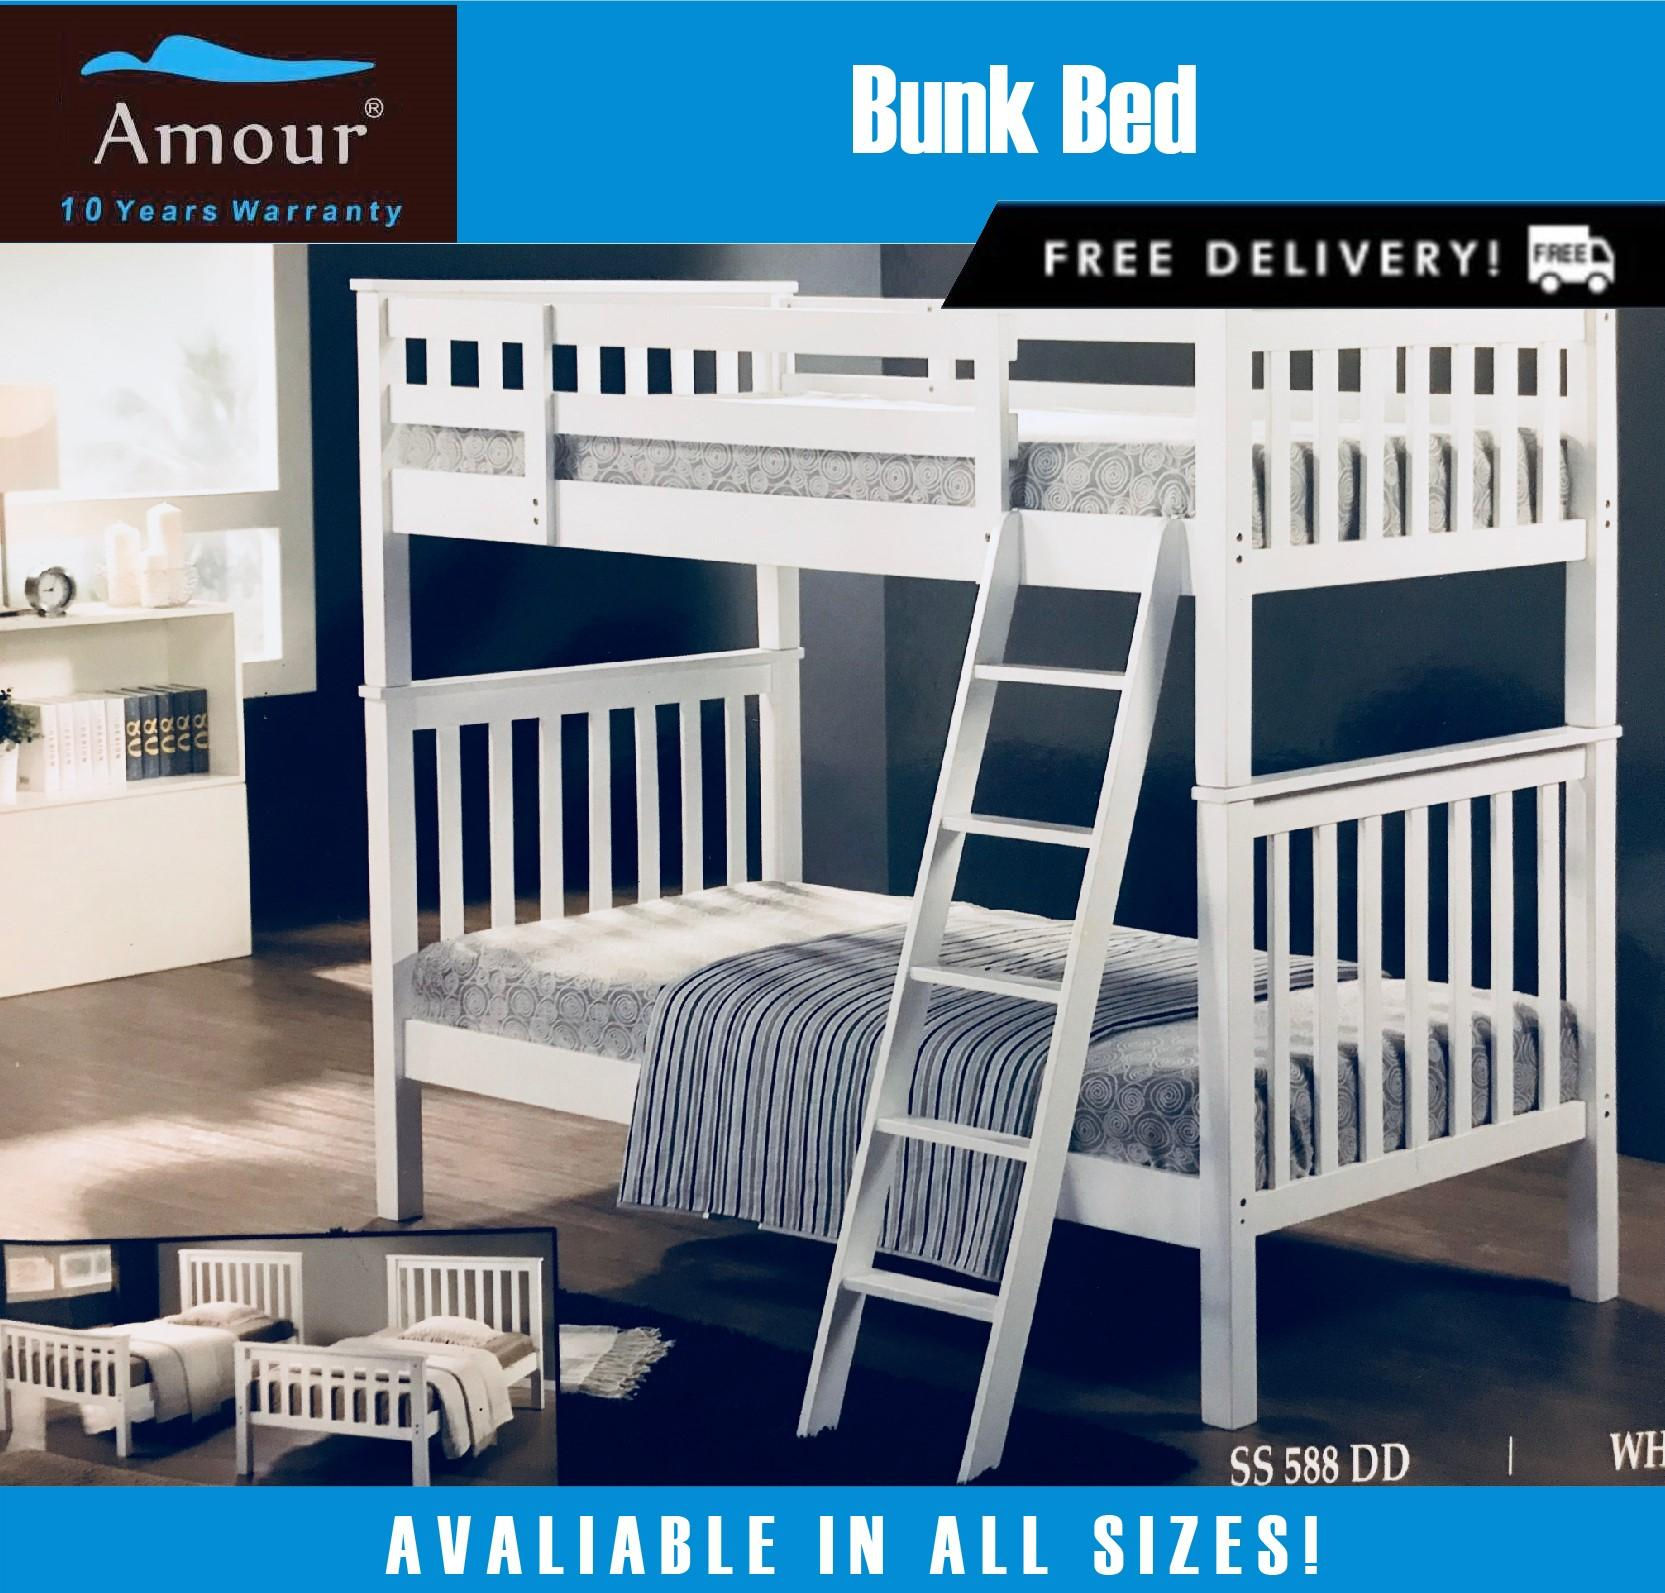 Amour Brand Wooden Double Decker bed / Bunk Bed 10 Years warranty.Best in Lazada